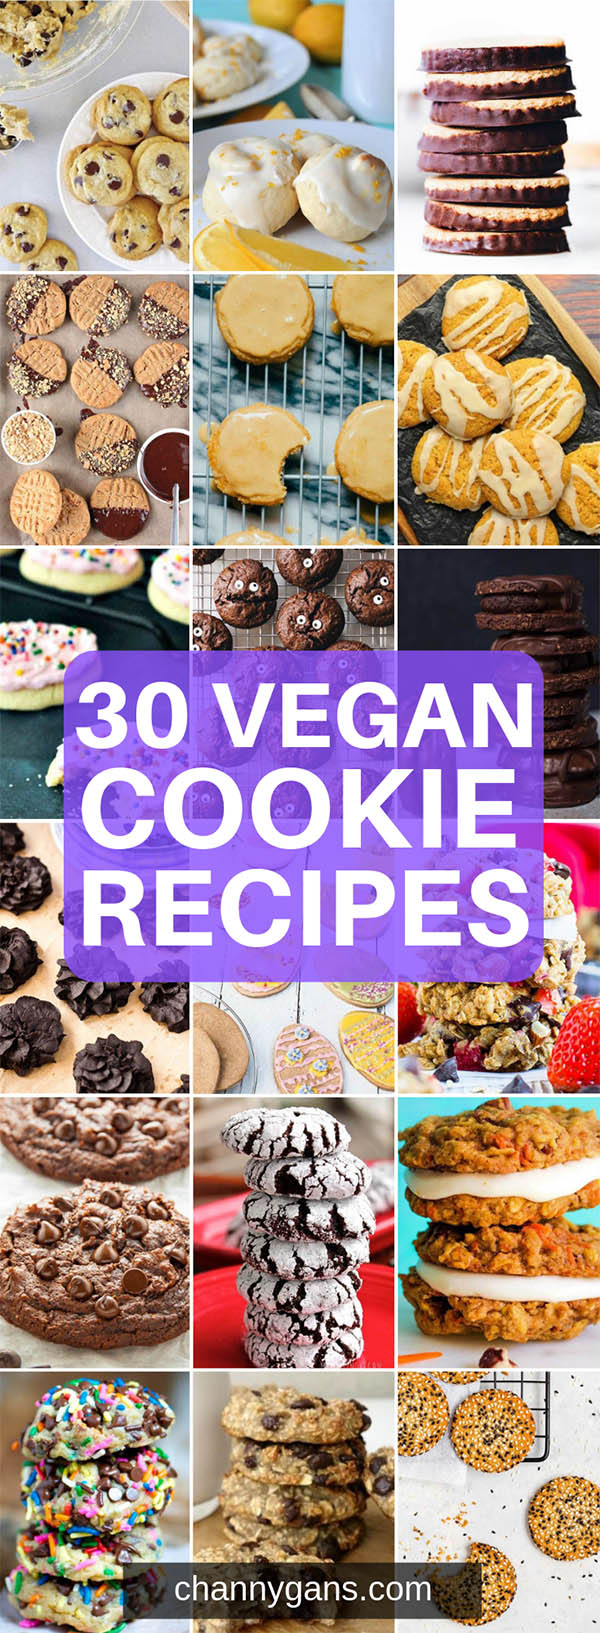 Craving a certain type of cookie but they are all non-vegan? Turns out you can totally make a vegan version of your favorite cookies! Try some of these delicious vegan cookie recipes!